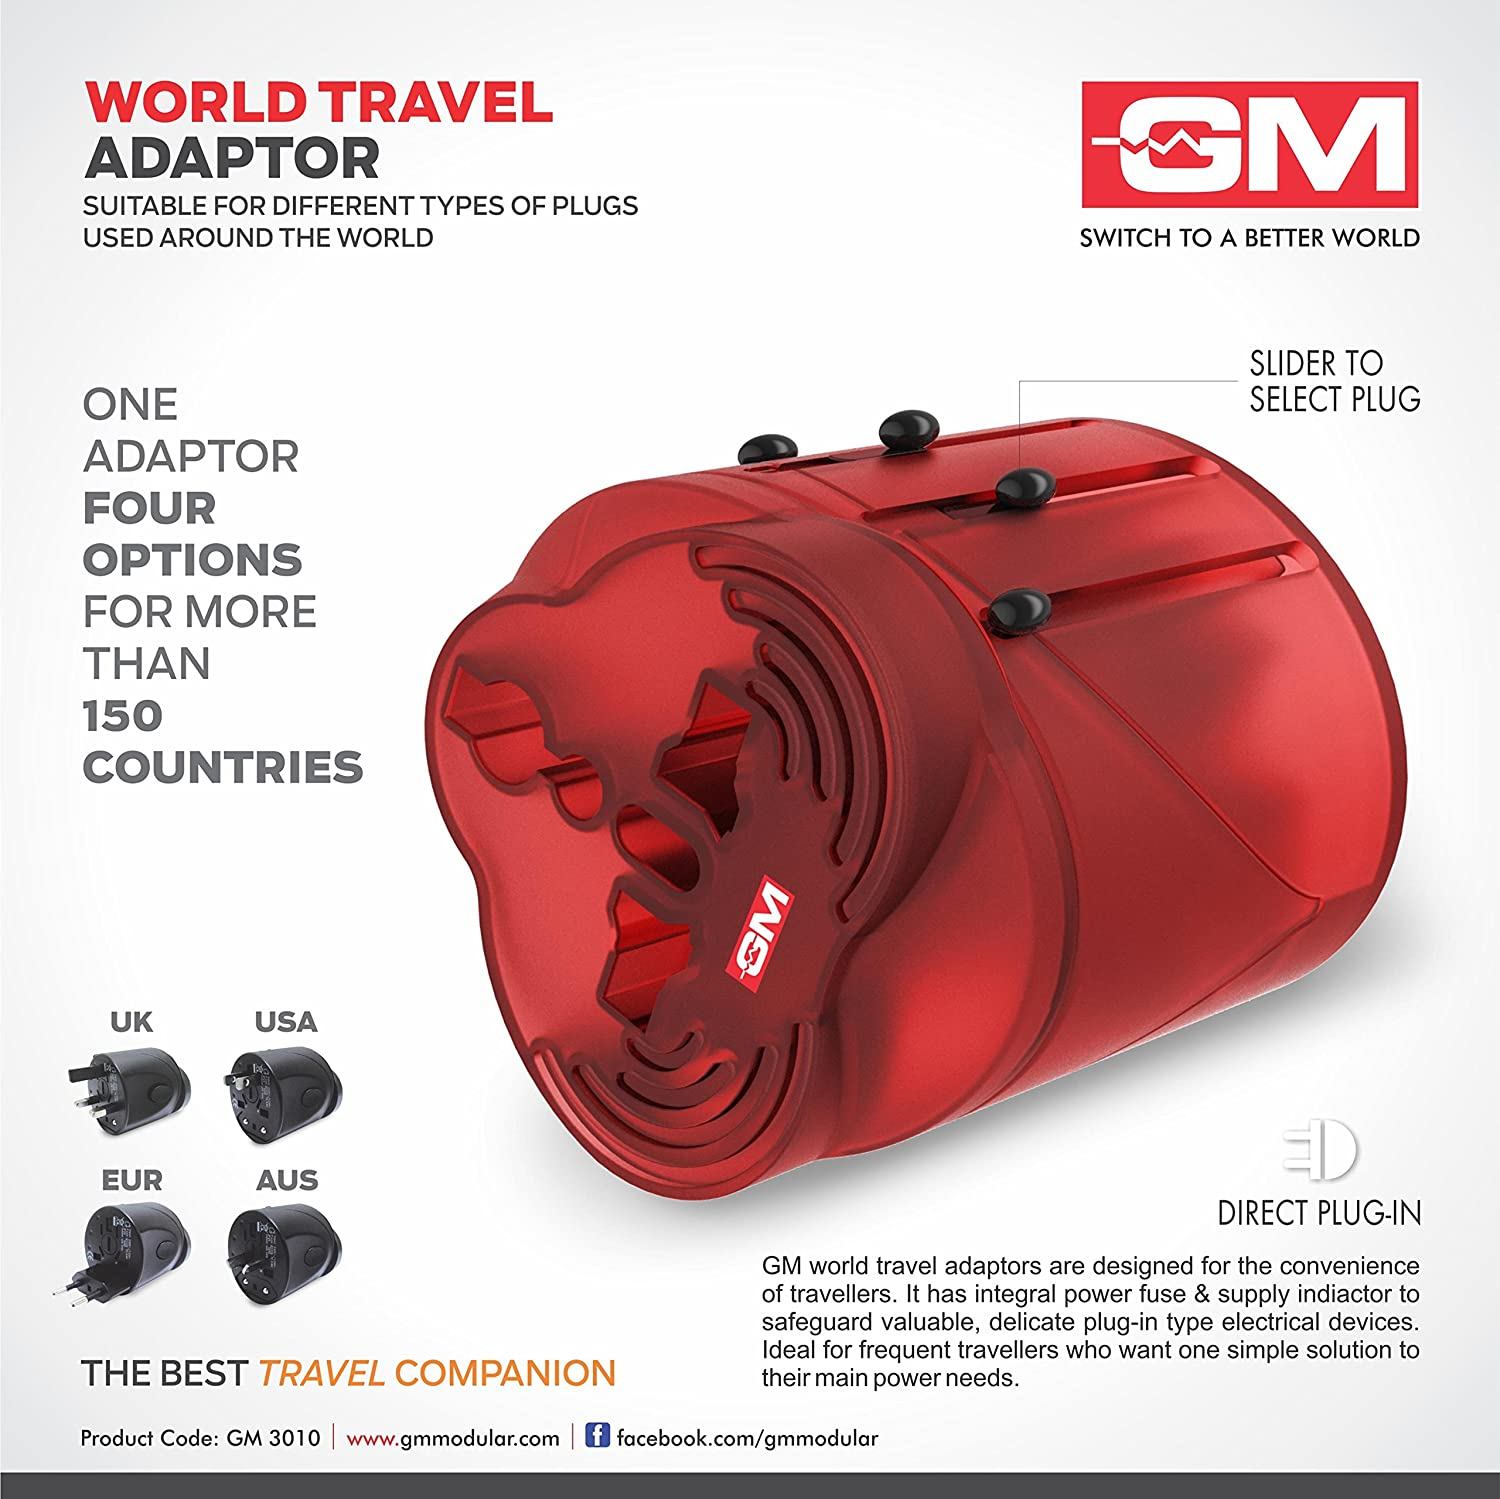 gm world travel adaptor suitable for different types of gm 3010 world travel adaptor suitable for different types of plugs used around the world in 150 countries color vary in home improvement